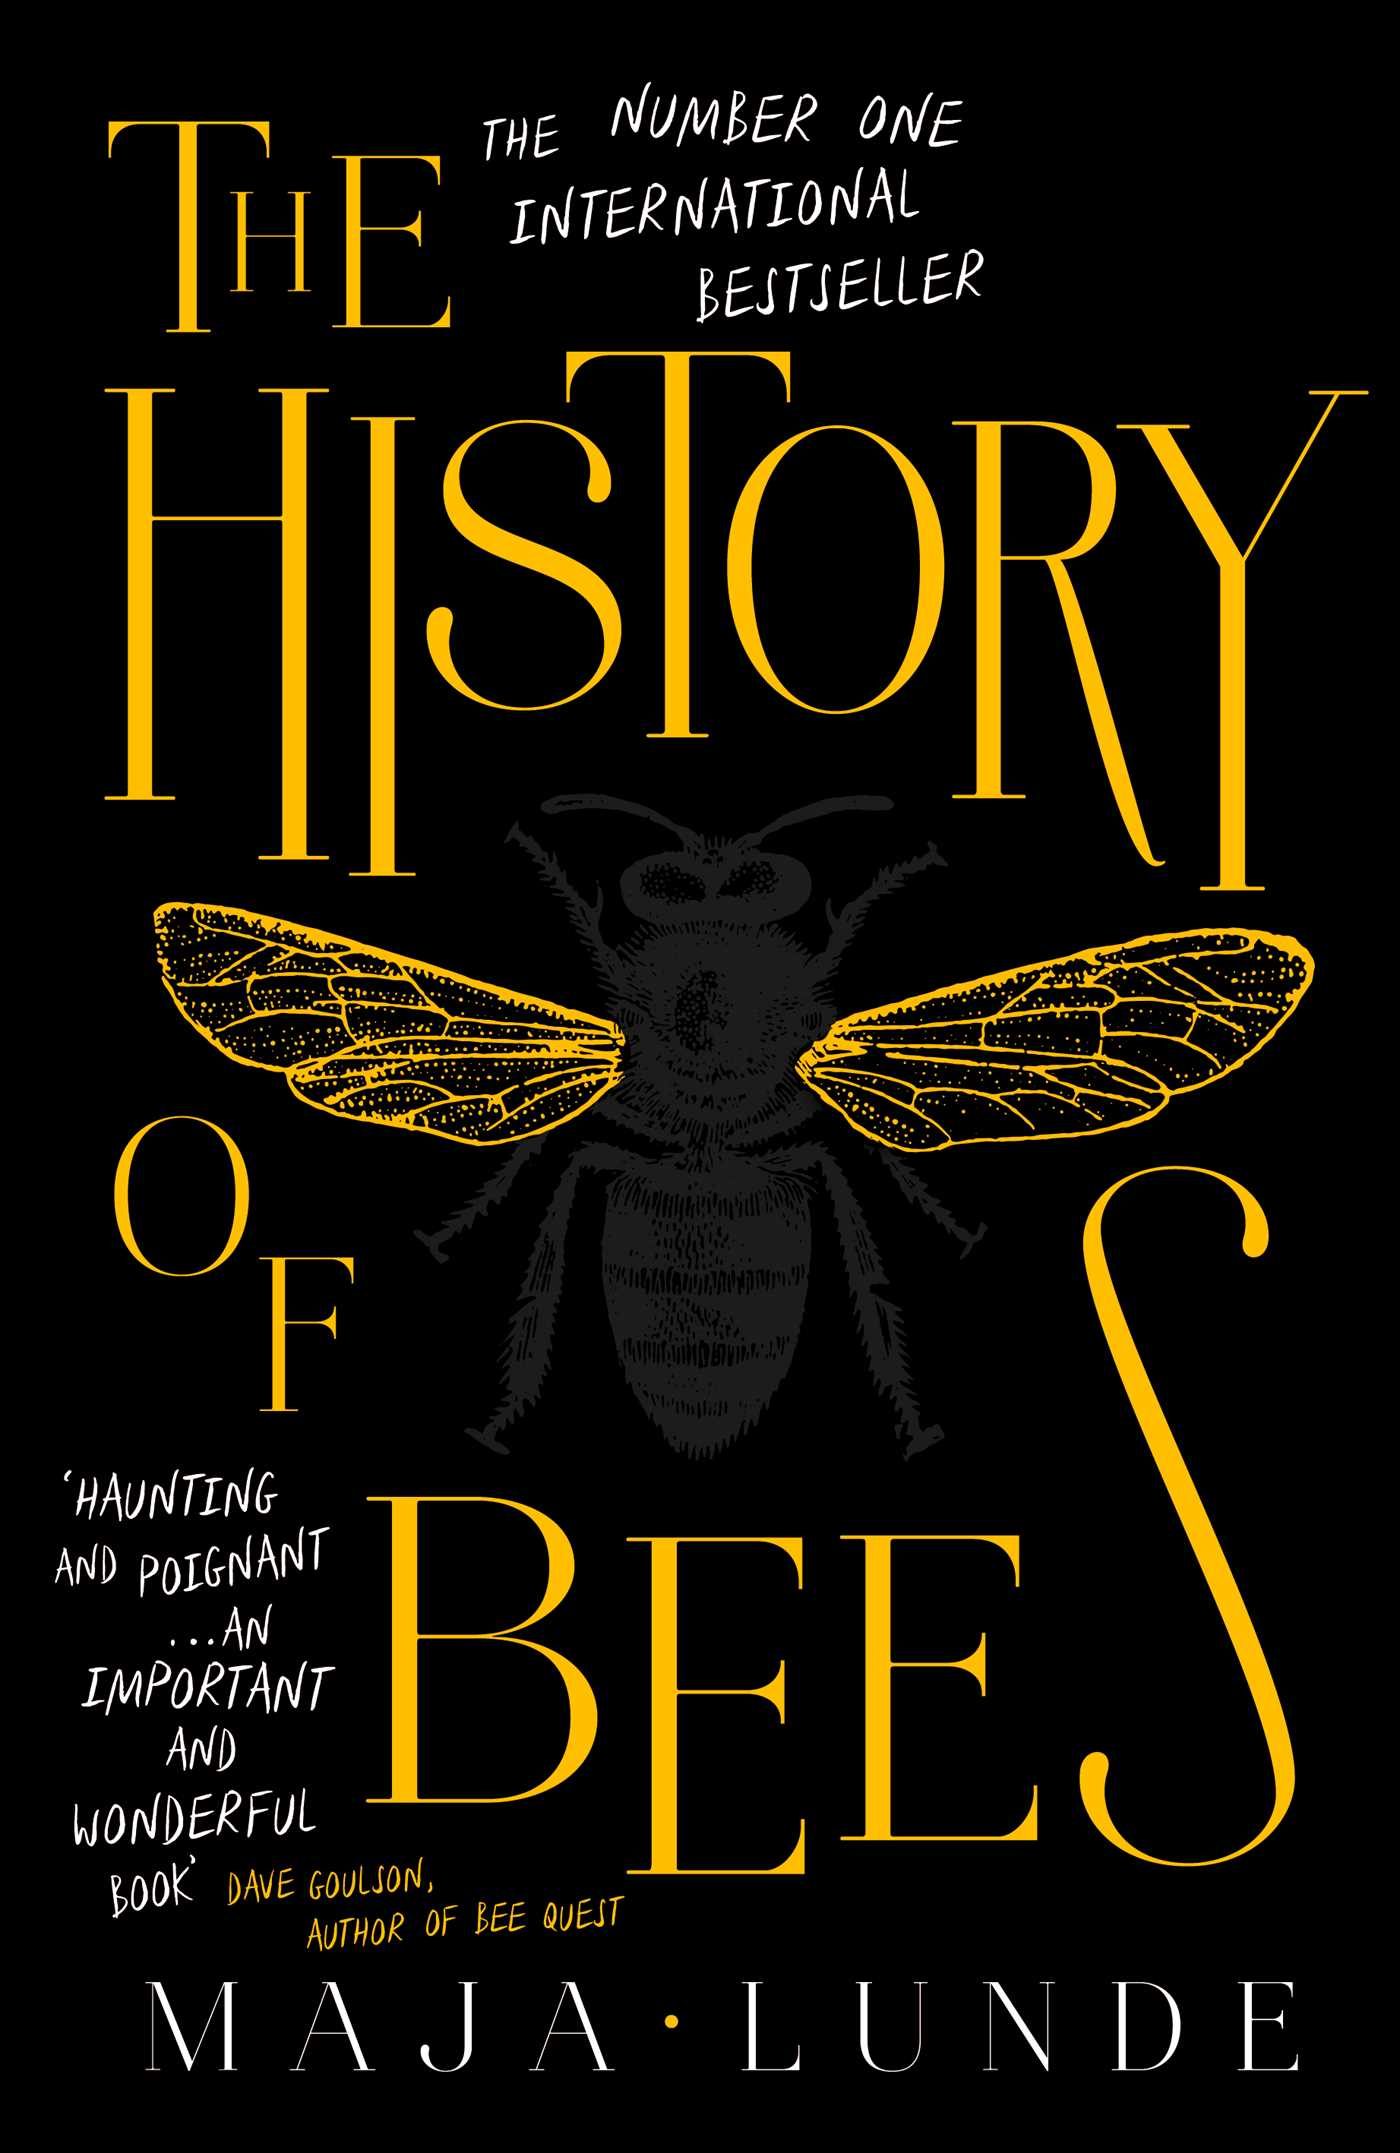 The history of bees 9781471162749 hr